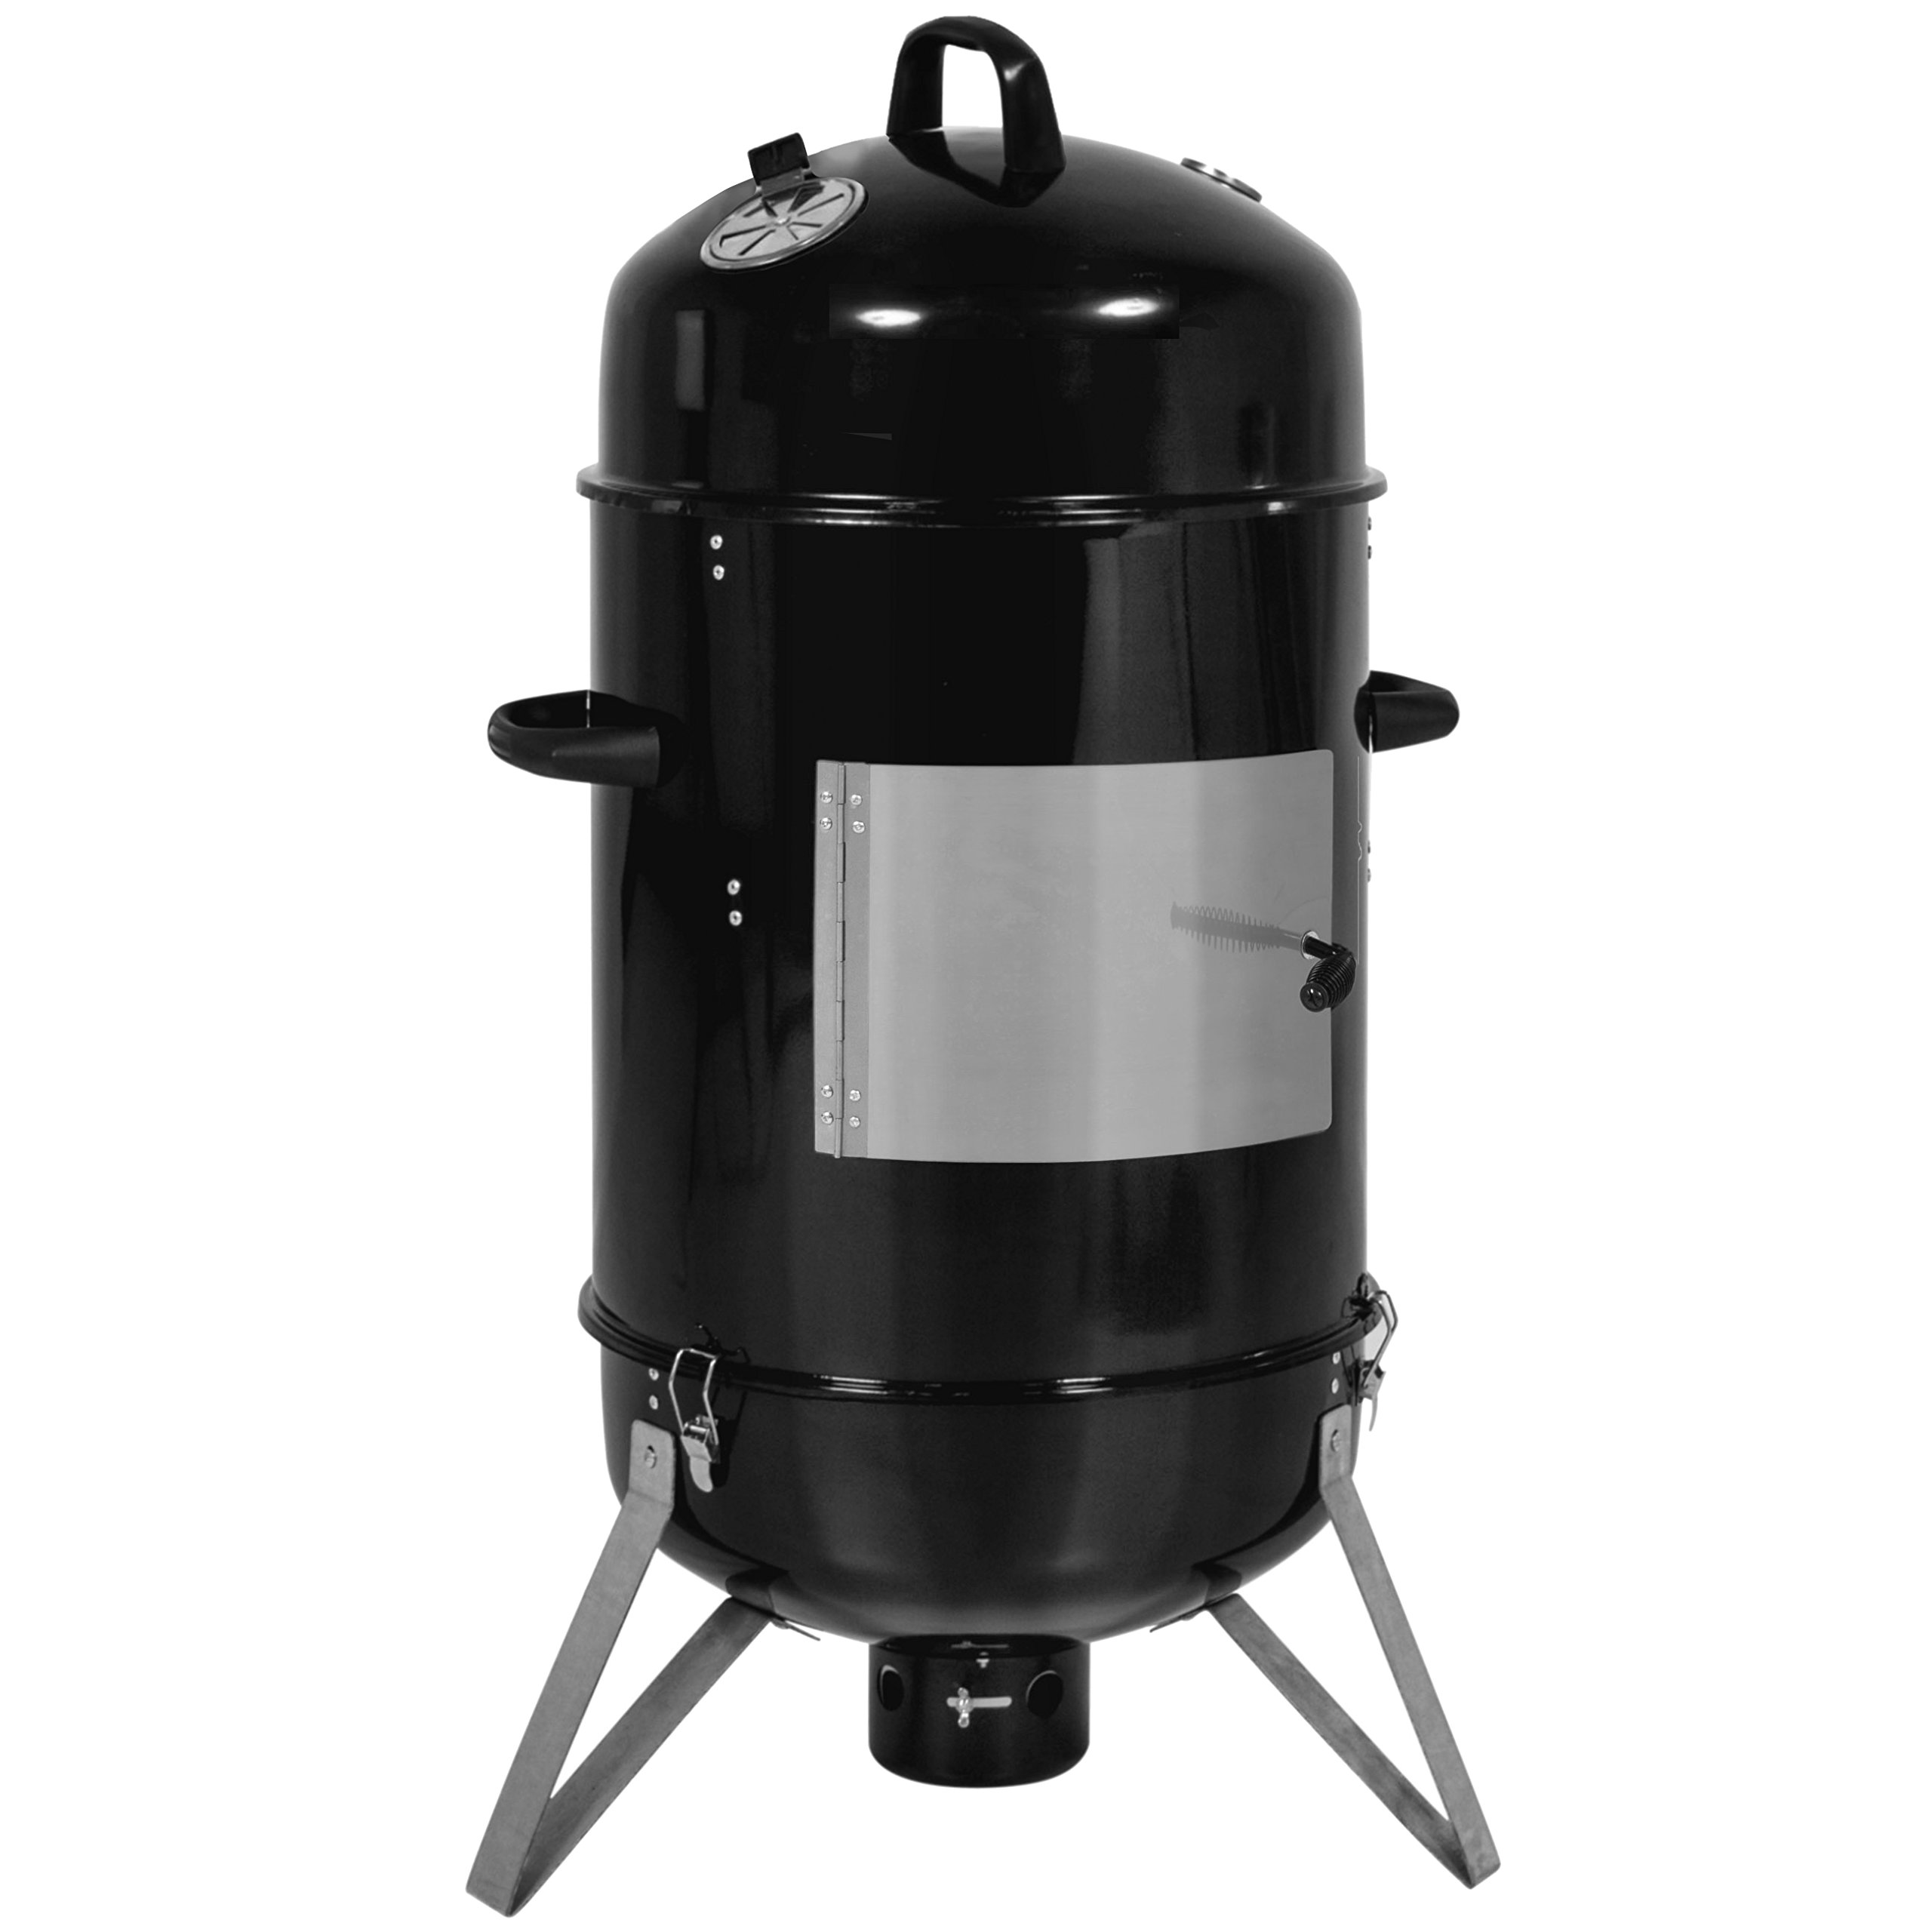 Best Choice Products 43in 3-Piece Outdoor BBQ Charcoal Vertical Design Smoker - Black by Best Choice Products